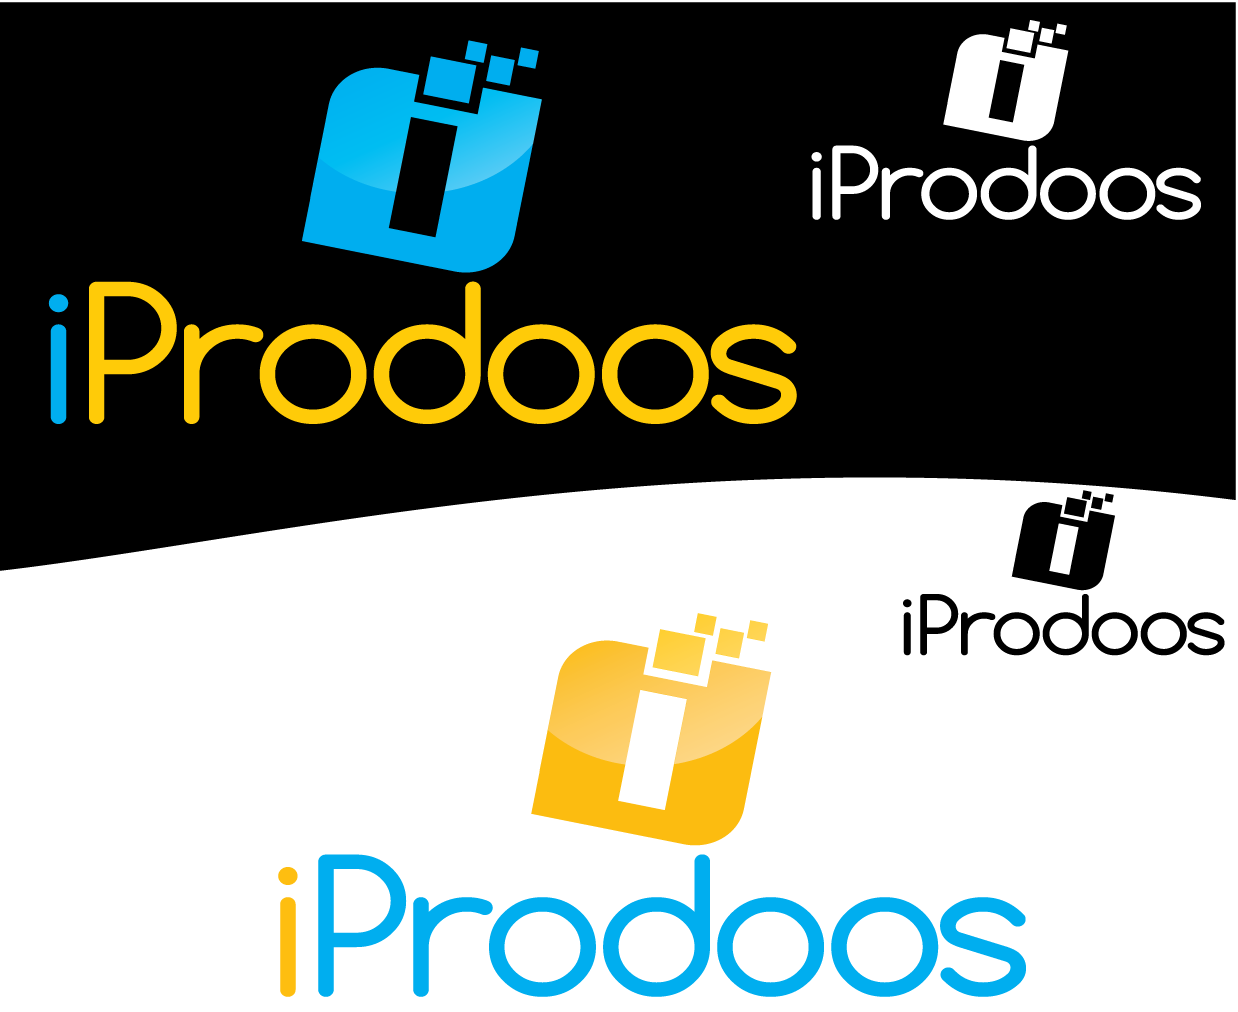 Logo Design by 354studio - Entry No. 65 in the Logo Design Contest New Logo Design for iProdoos.